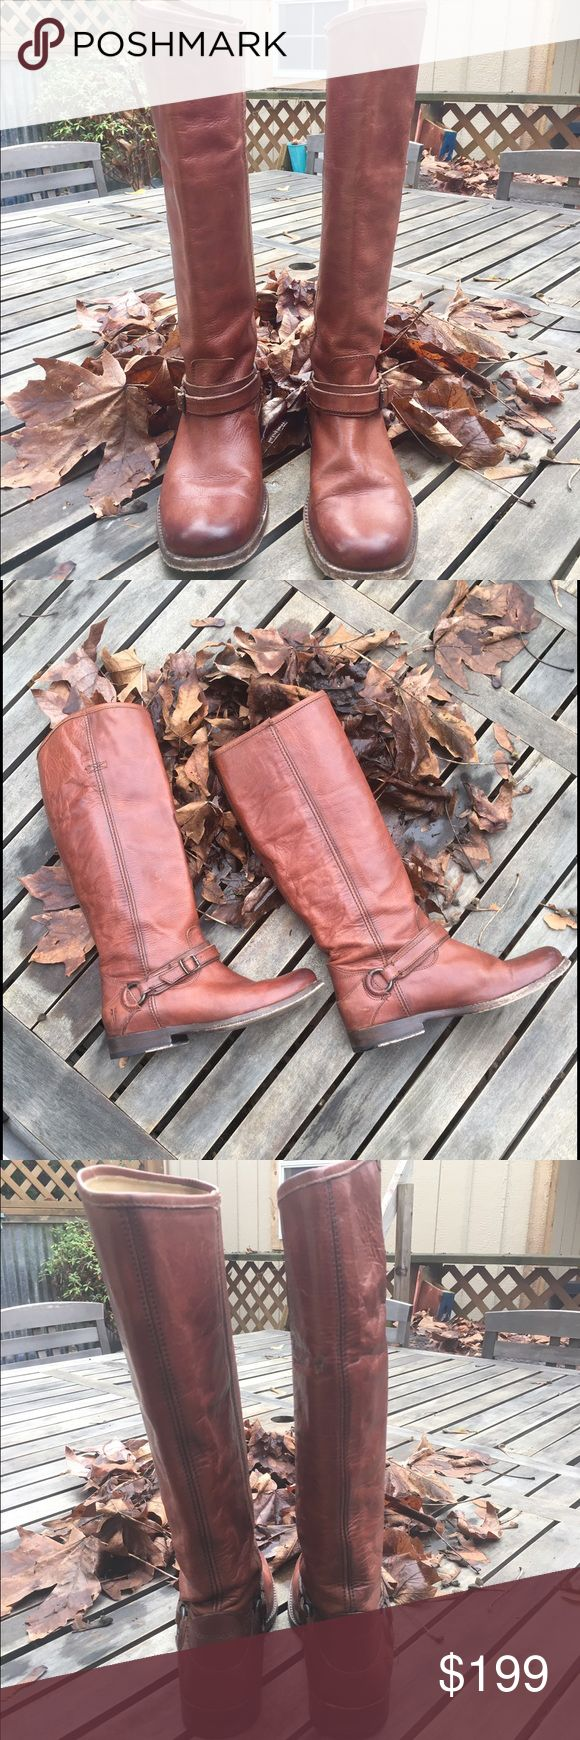 """🆕Frye riding boots Frye boots, founded in 1863 are made from the finest quality leather!  They are made to enjoy them well and hold up so well over time.  These beauties, I believe are from the Shirley collection. The shaft is 15"""" and heels are 1"""".  In EUC - no rips, holes or tears...they are soft and broken in for immediate wear!  0511116 Frye Shoes Heeled Boots"""